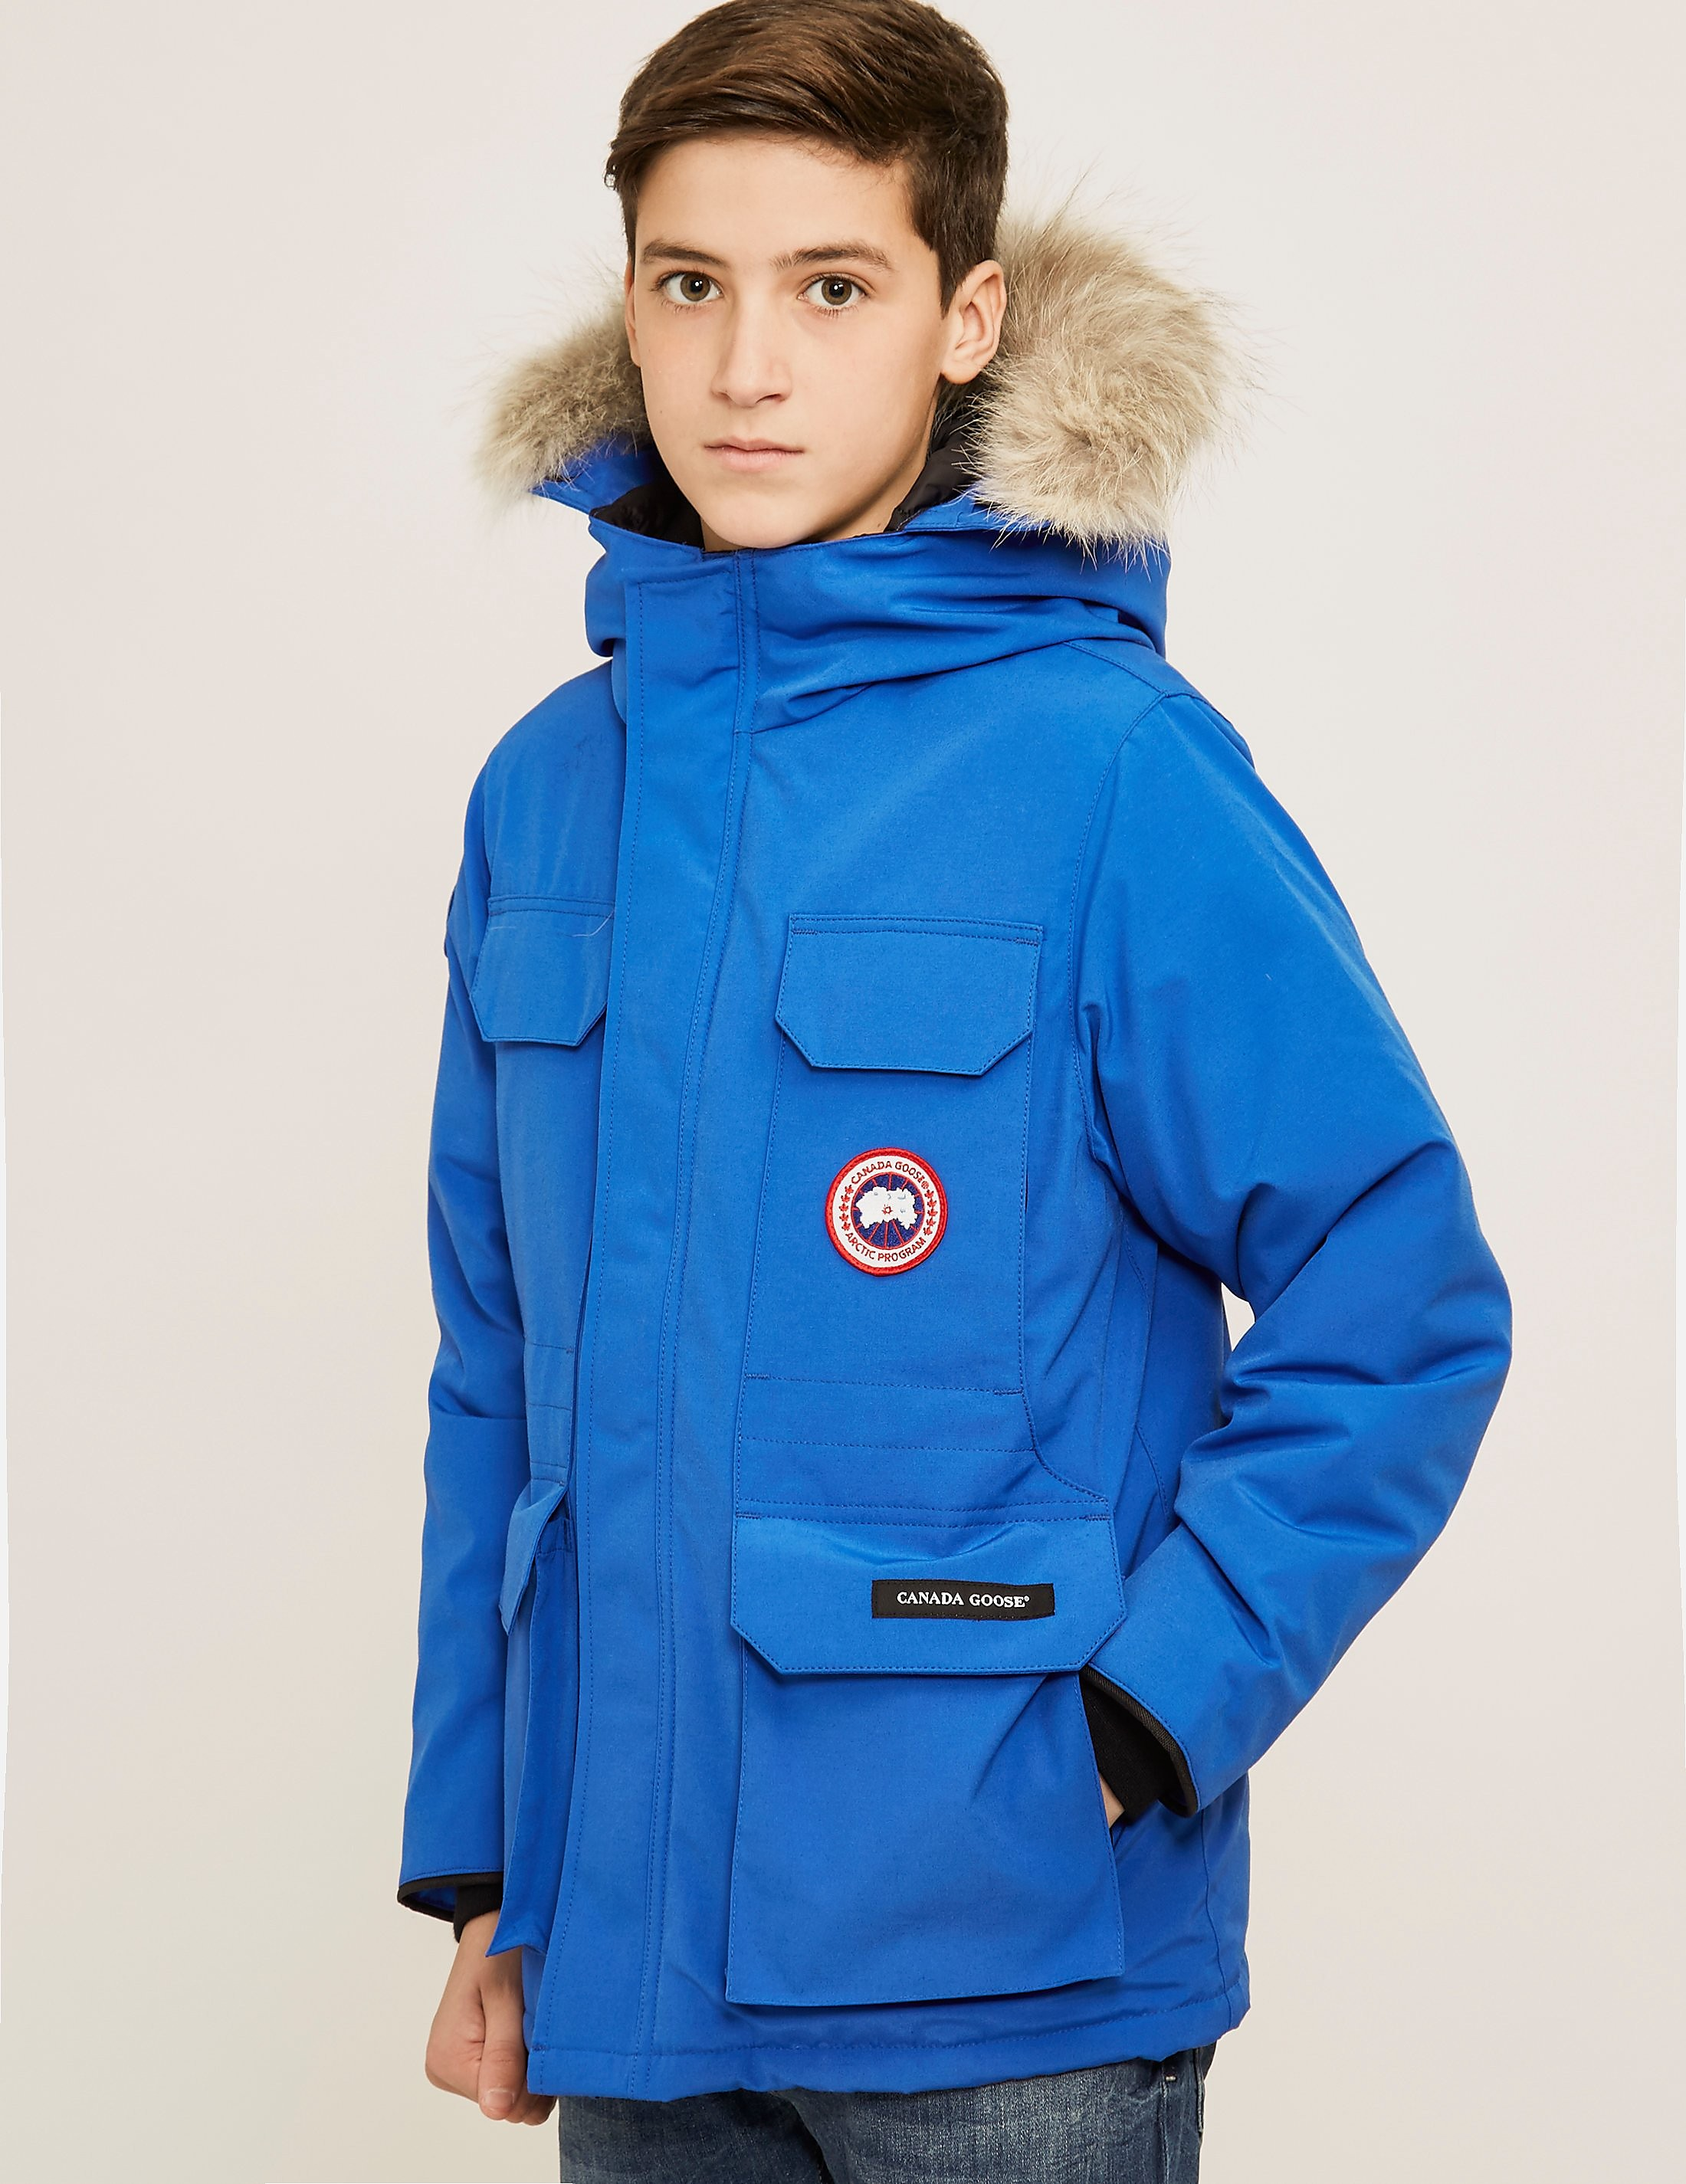 Canada Goose Youth Expedition Parka